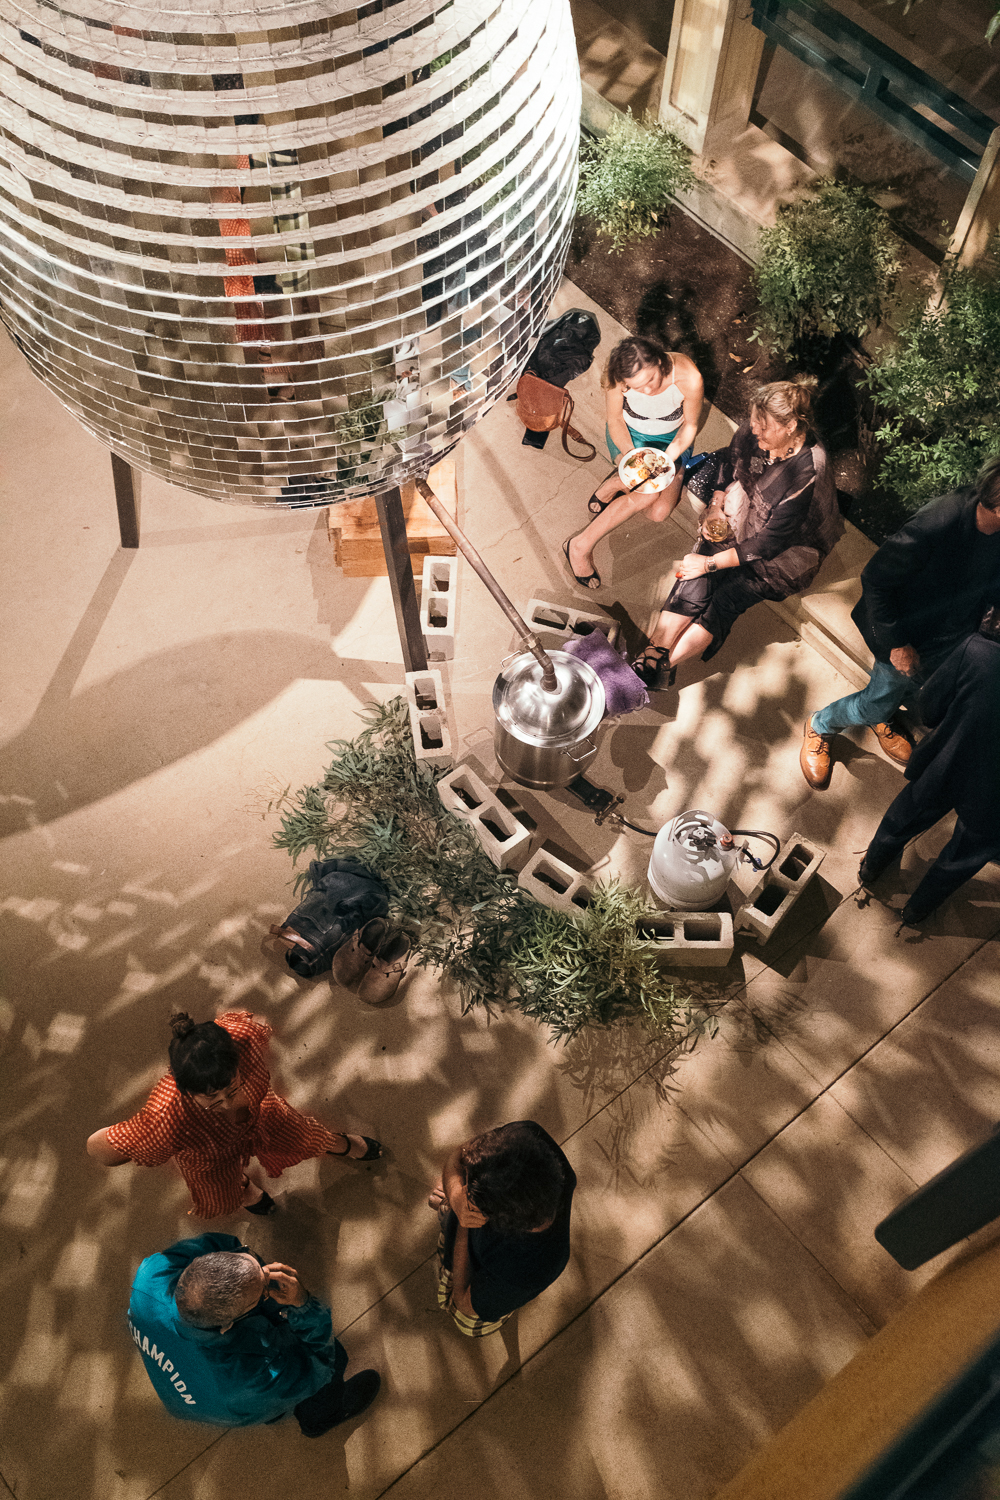 Our guest basking in the light of Michael Parker's Steam Egg at M&A's Fête at Fifteen, which celebrated fifteen years of experimental architecture.